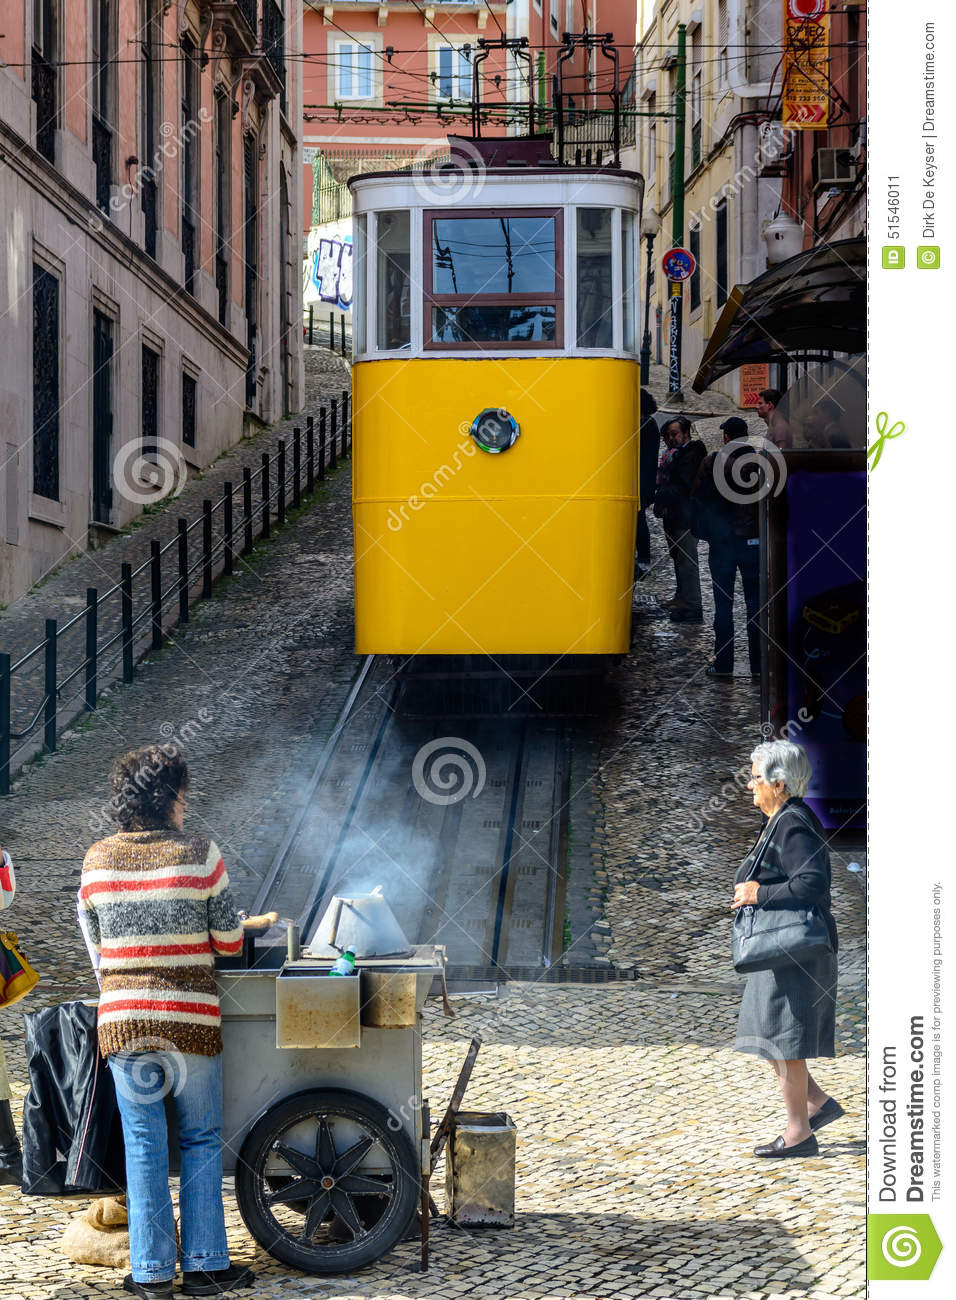 Streets in Lisbon, Portugal with yellow tram